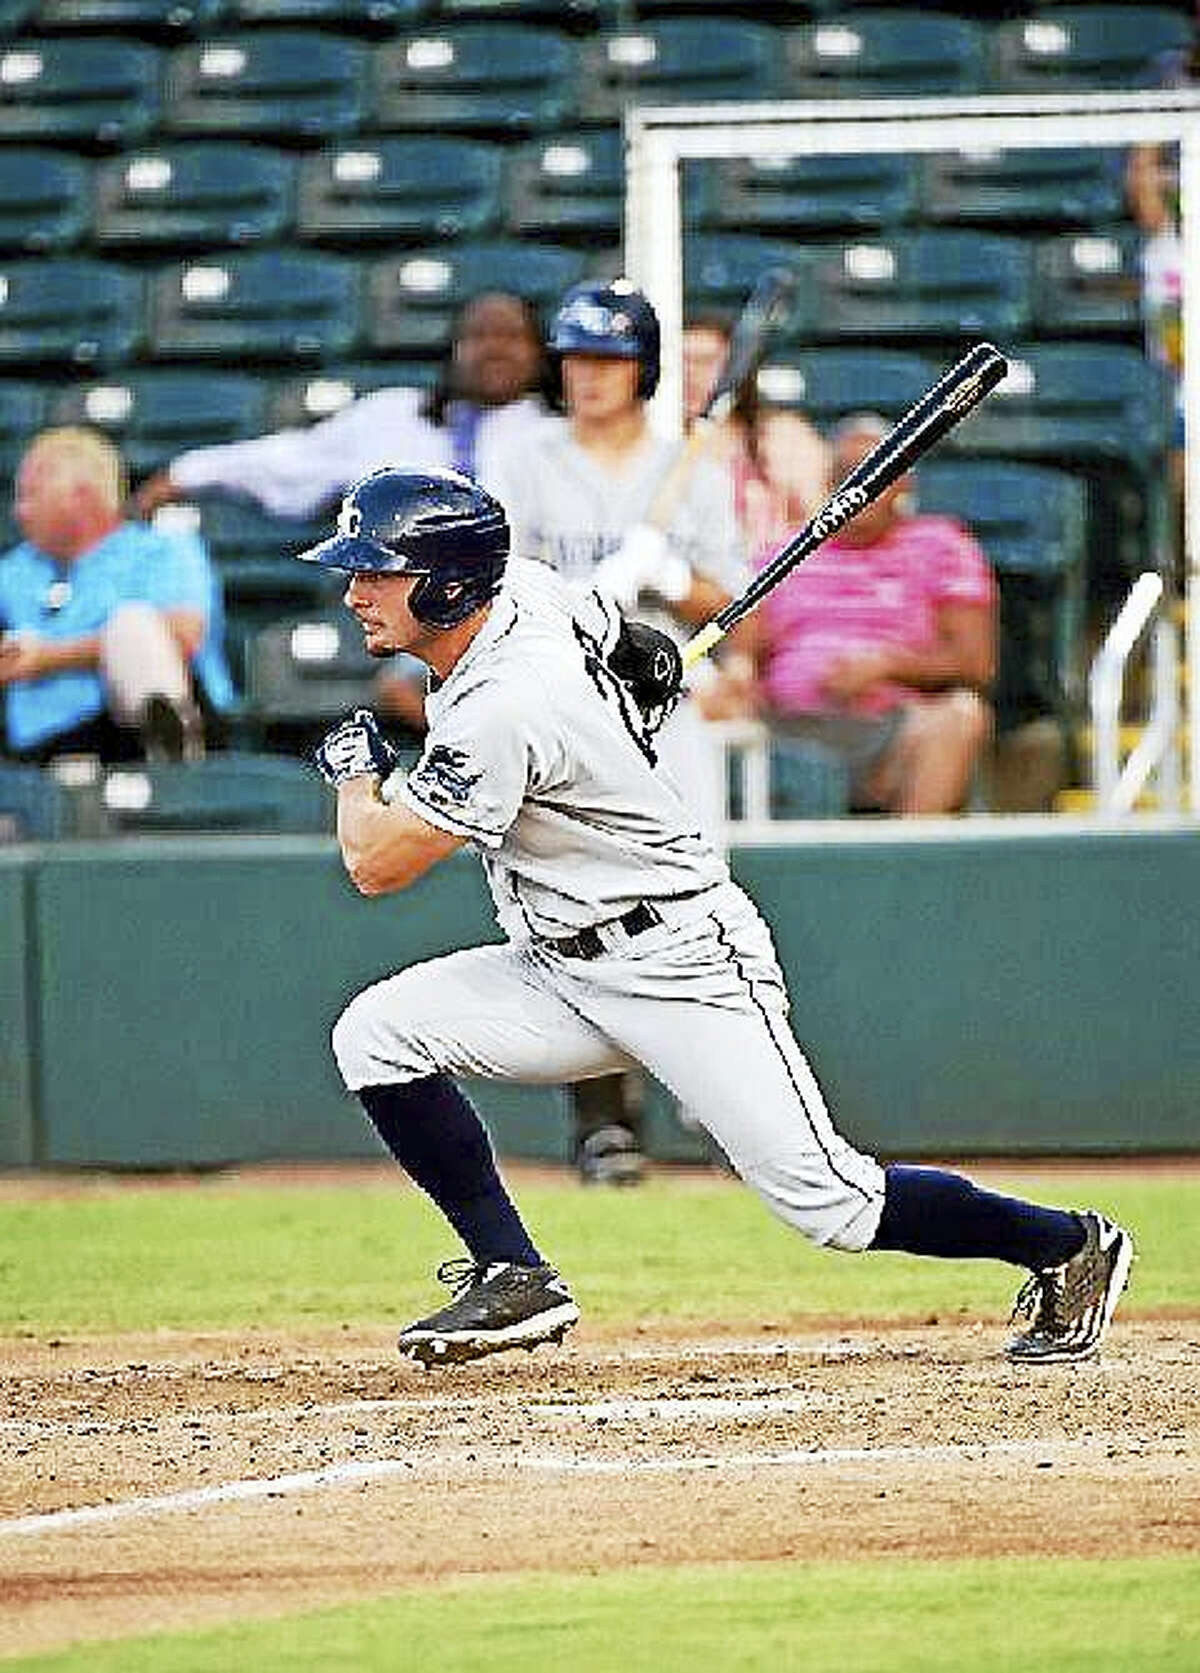 Monroe's Thomas Milone is playing for the Charlotte Stone Crabs, Tampa Bay's high-A affiliate, this season.